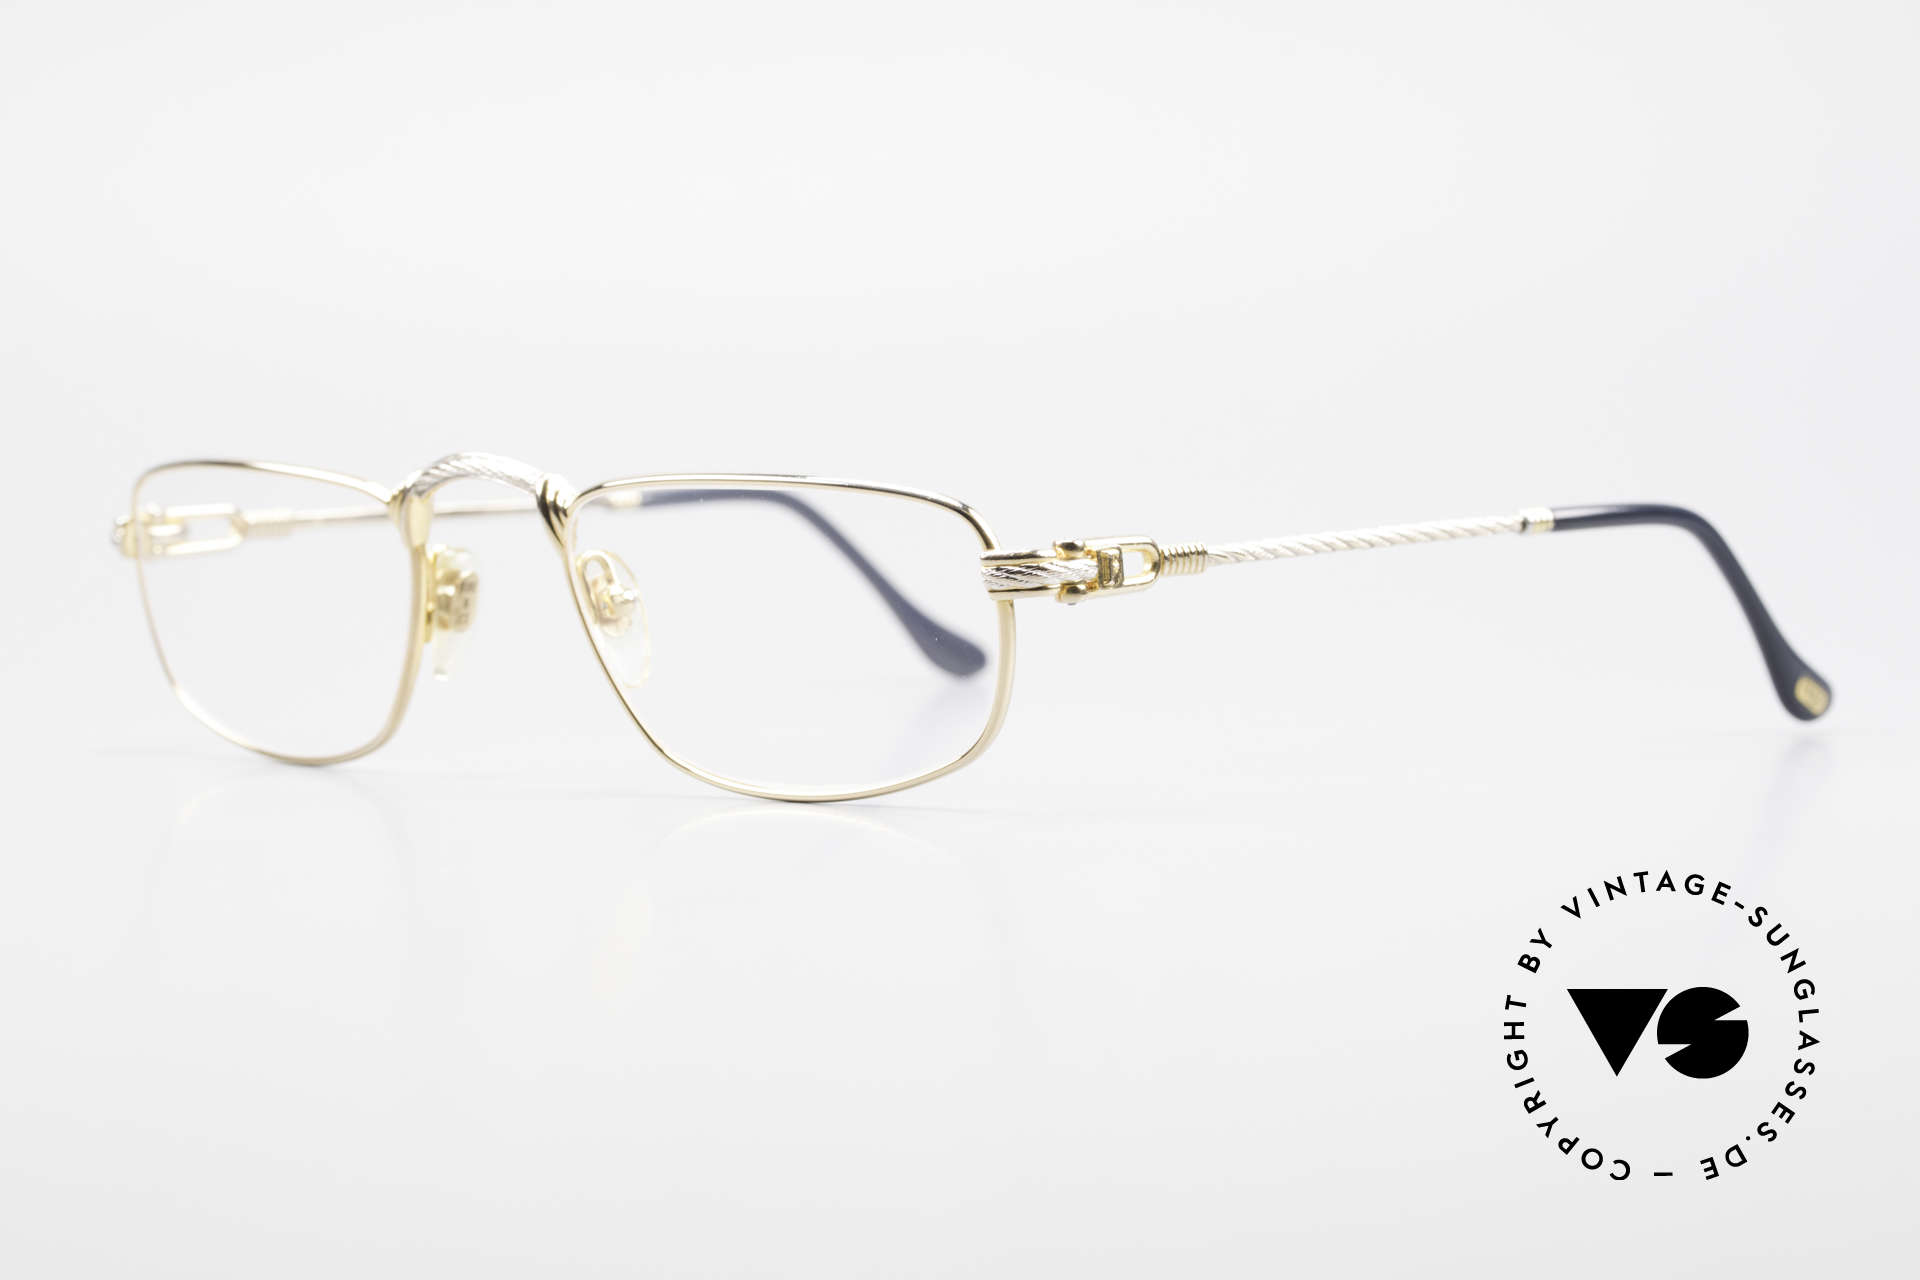 Fred Demi Lune Half Moon Reading Glasses, the name says it all: 'demi lune' = french for 'half moon', Made for Men and Women